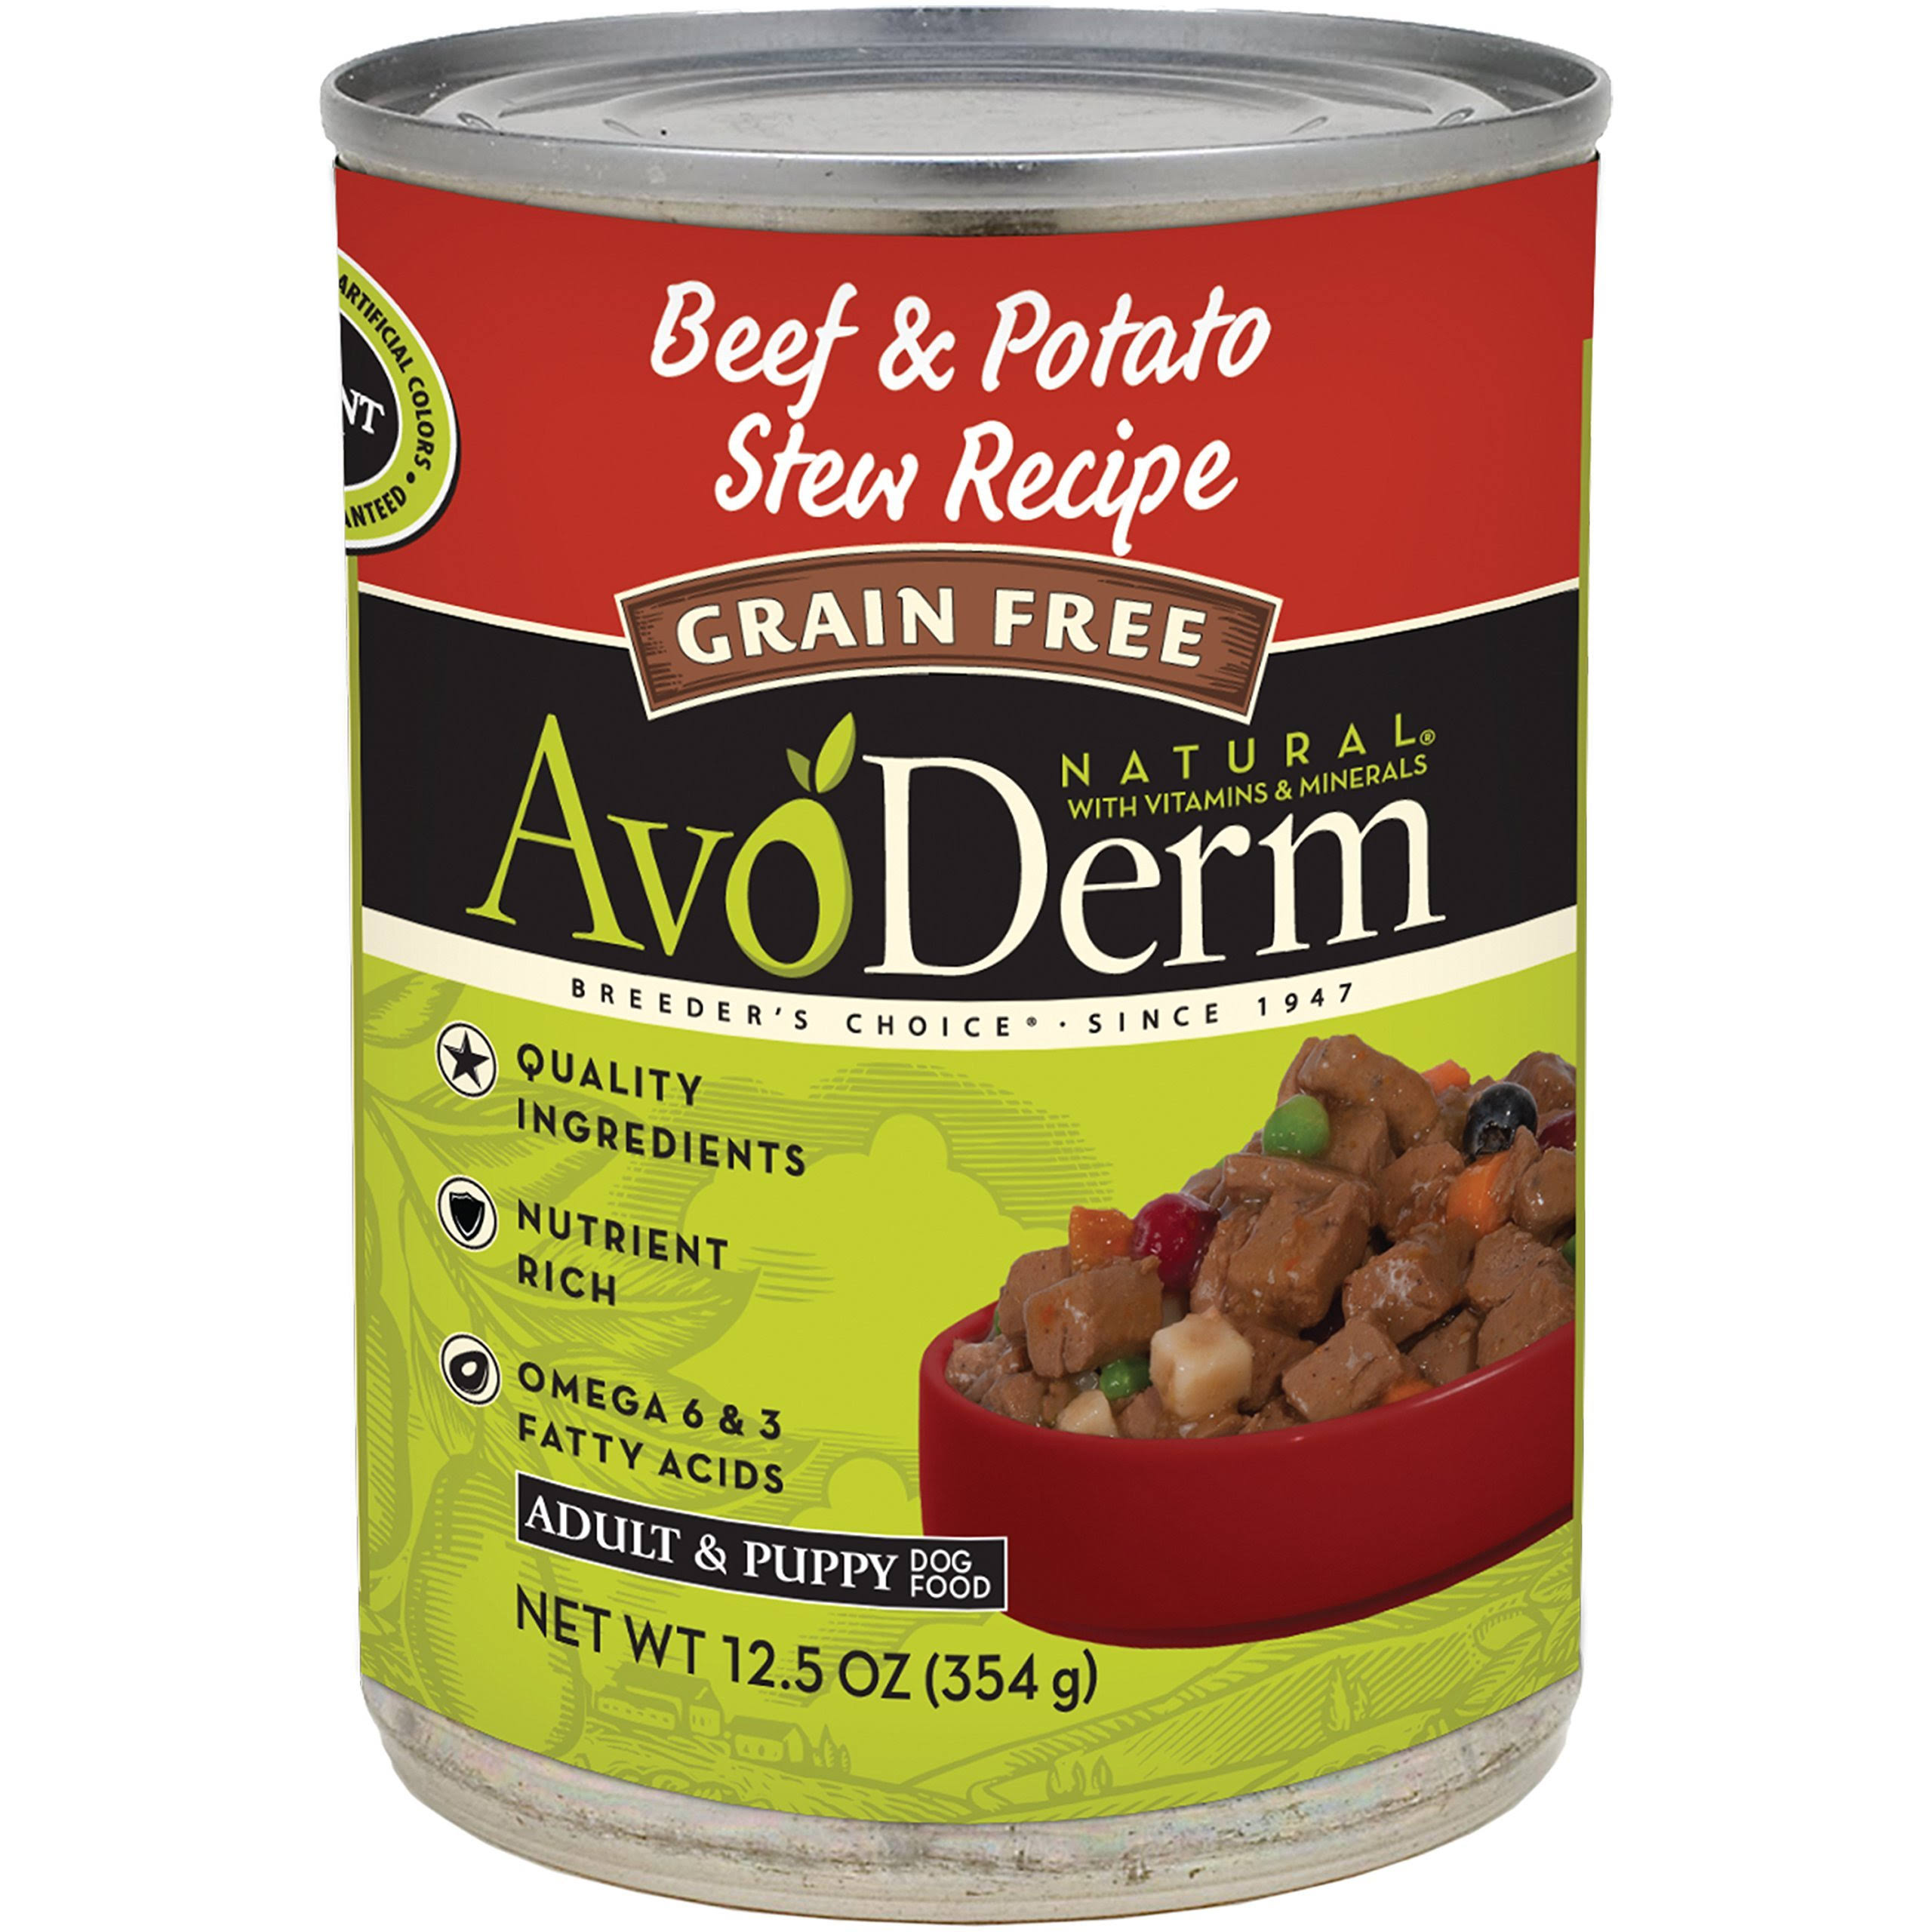 AvoDerm Grain-Free Canned Dog Food - Beef & Potato Stew Recipe, 12.5oz